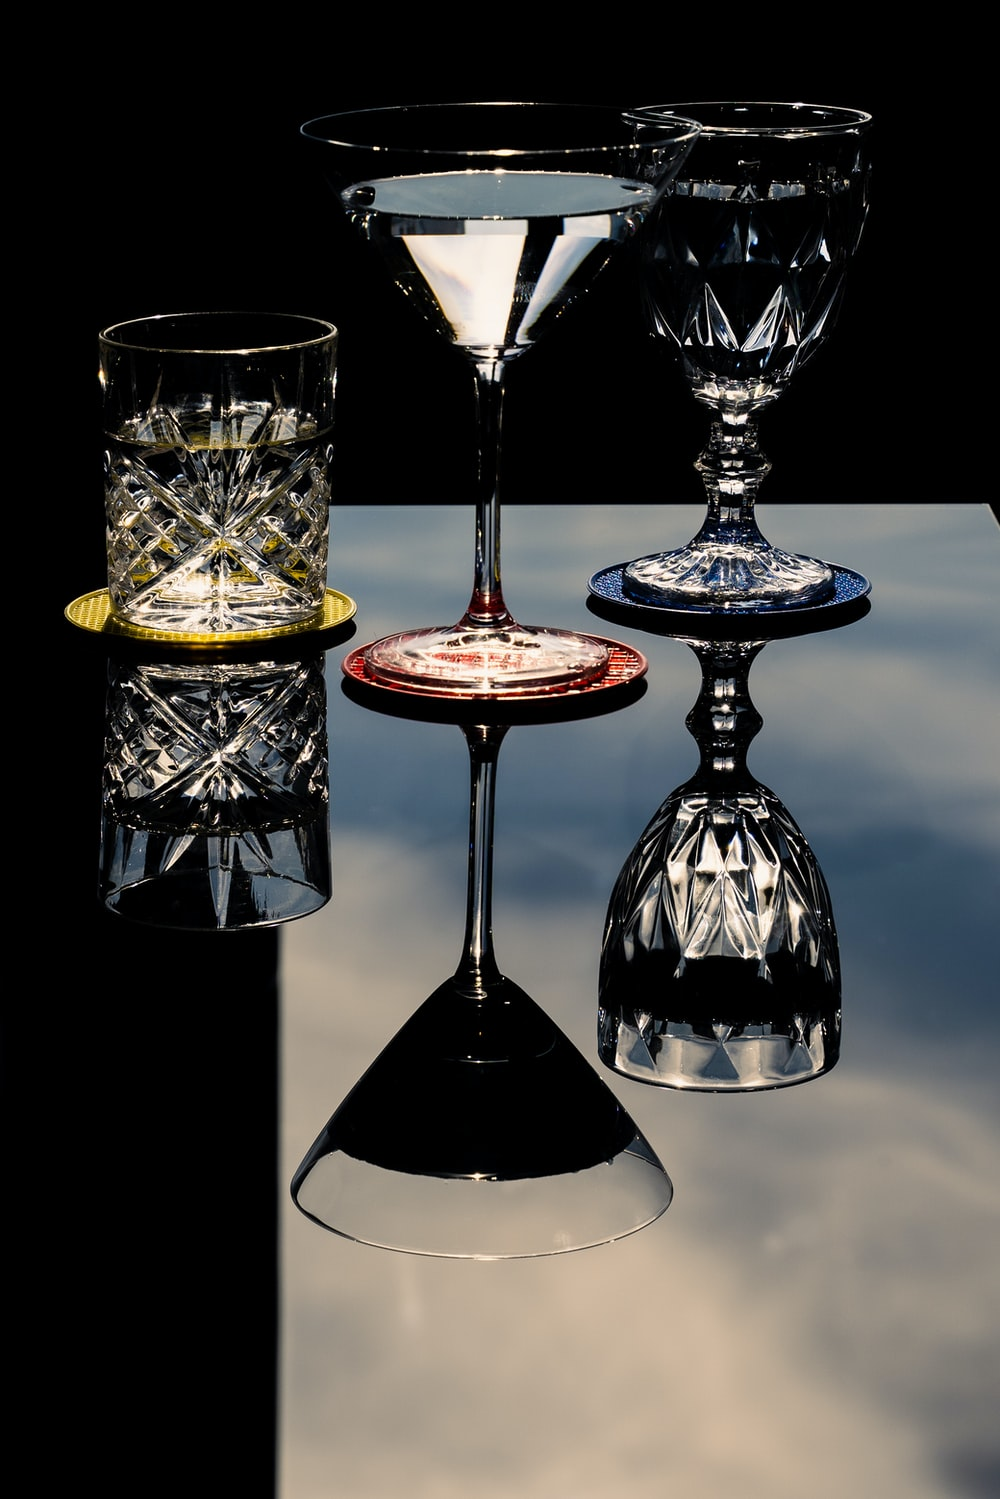 2 clear wine glasses with red liquid